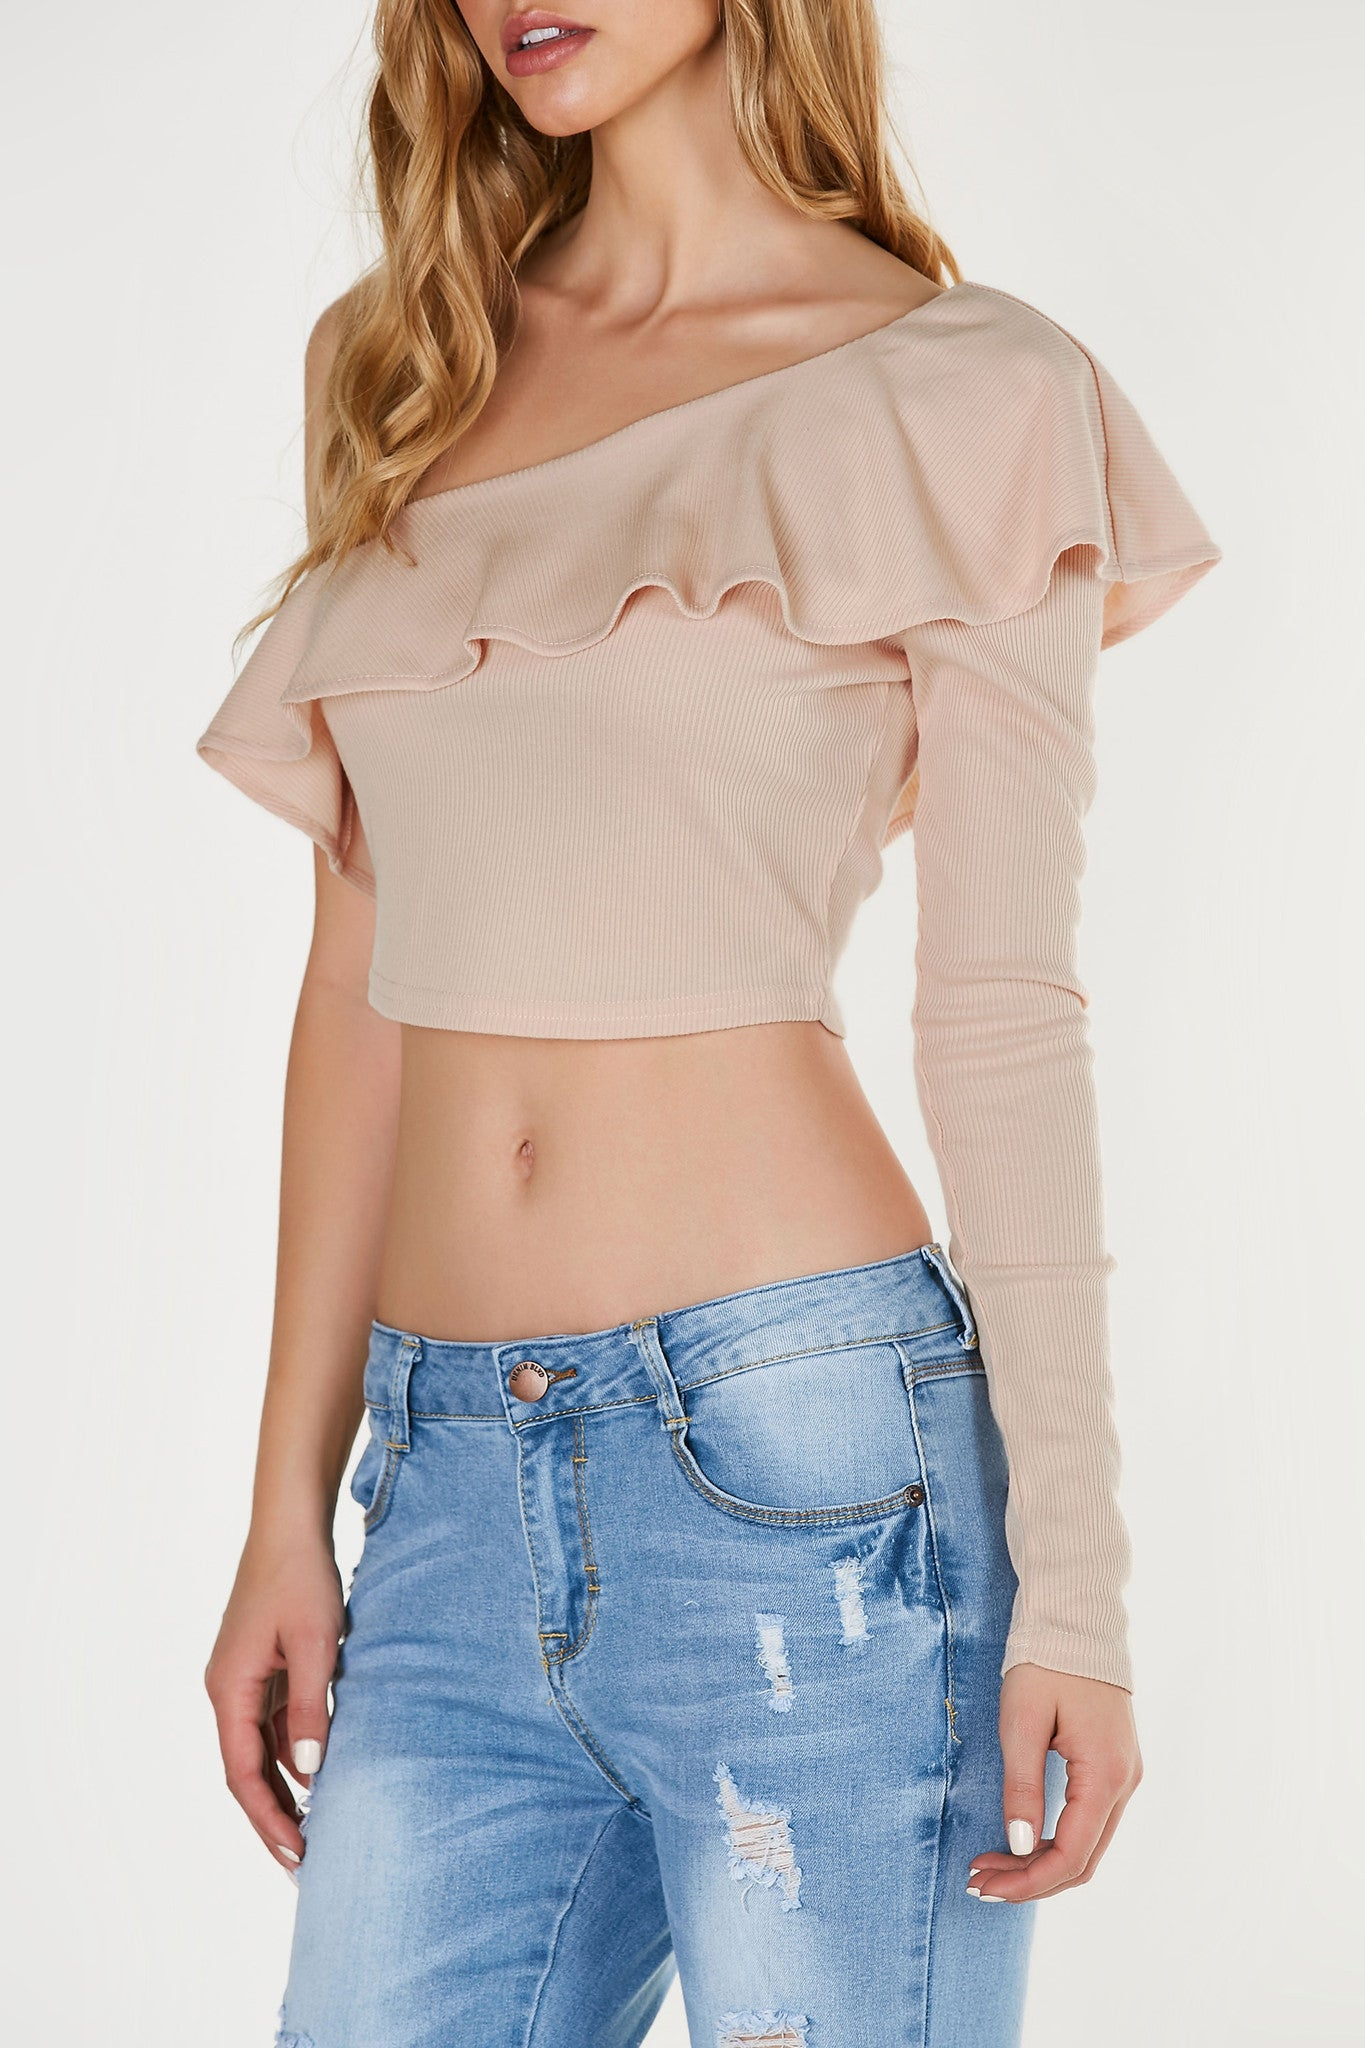 Flirty ribbed one shoulder top with bold ruffle tier. Cropped hem with slim fit all around.